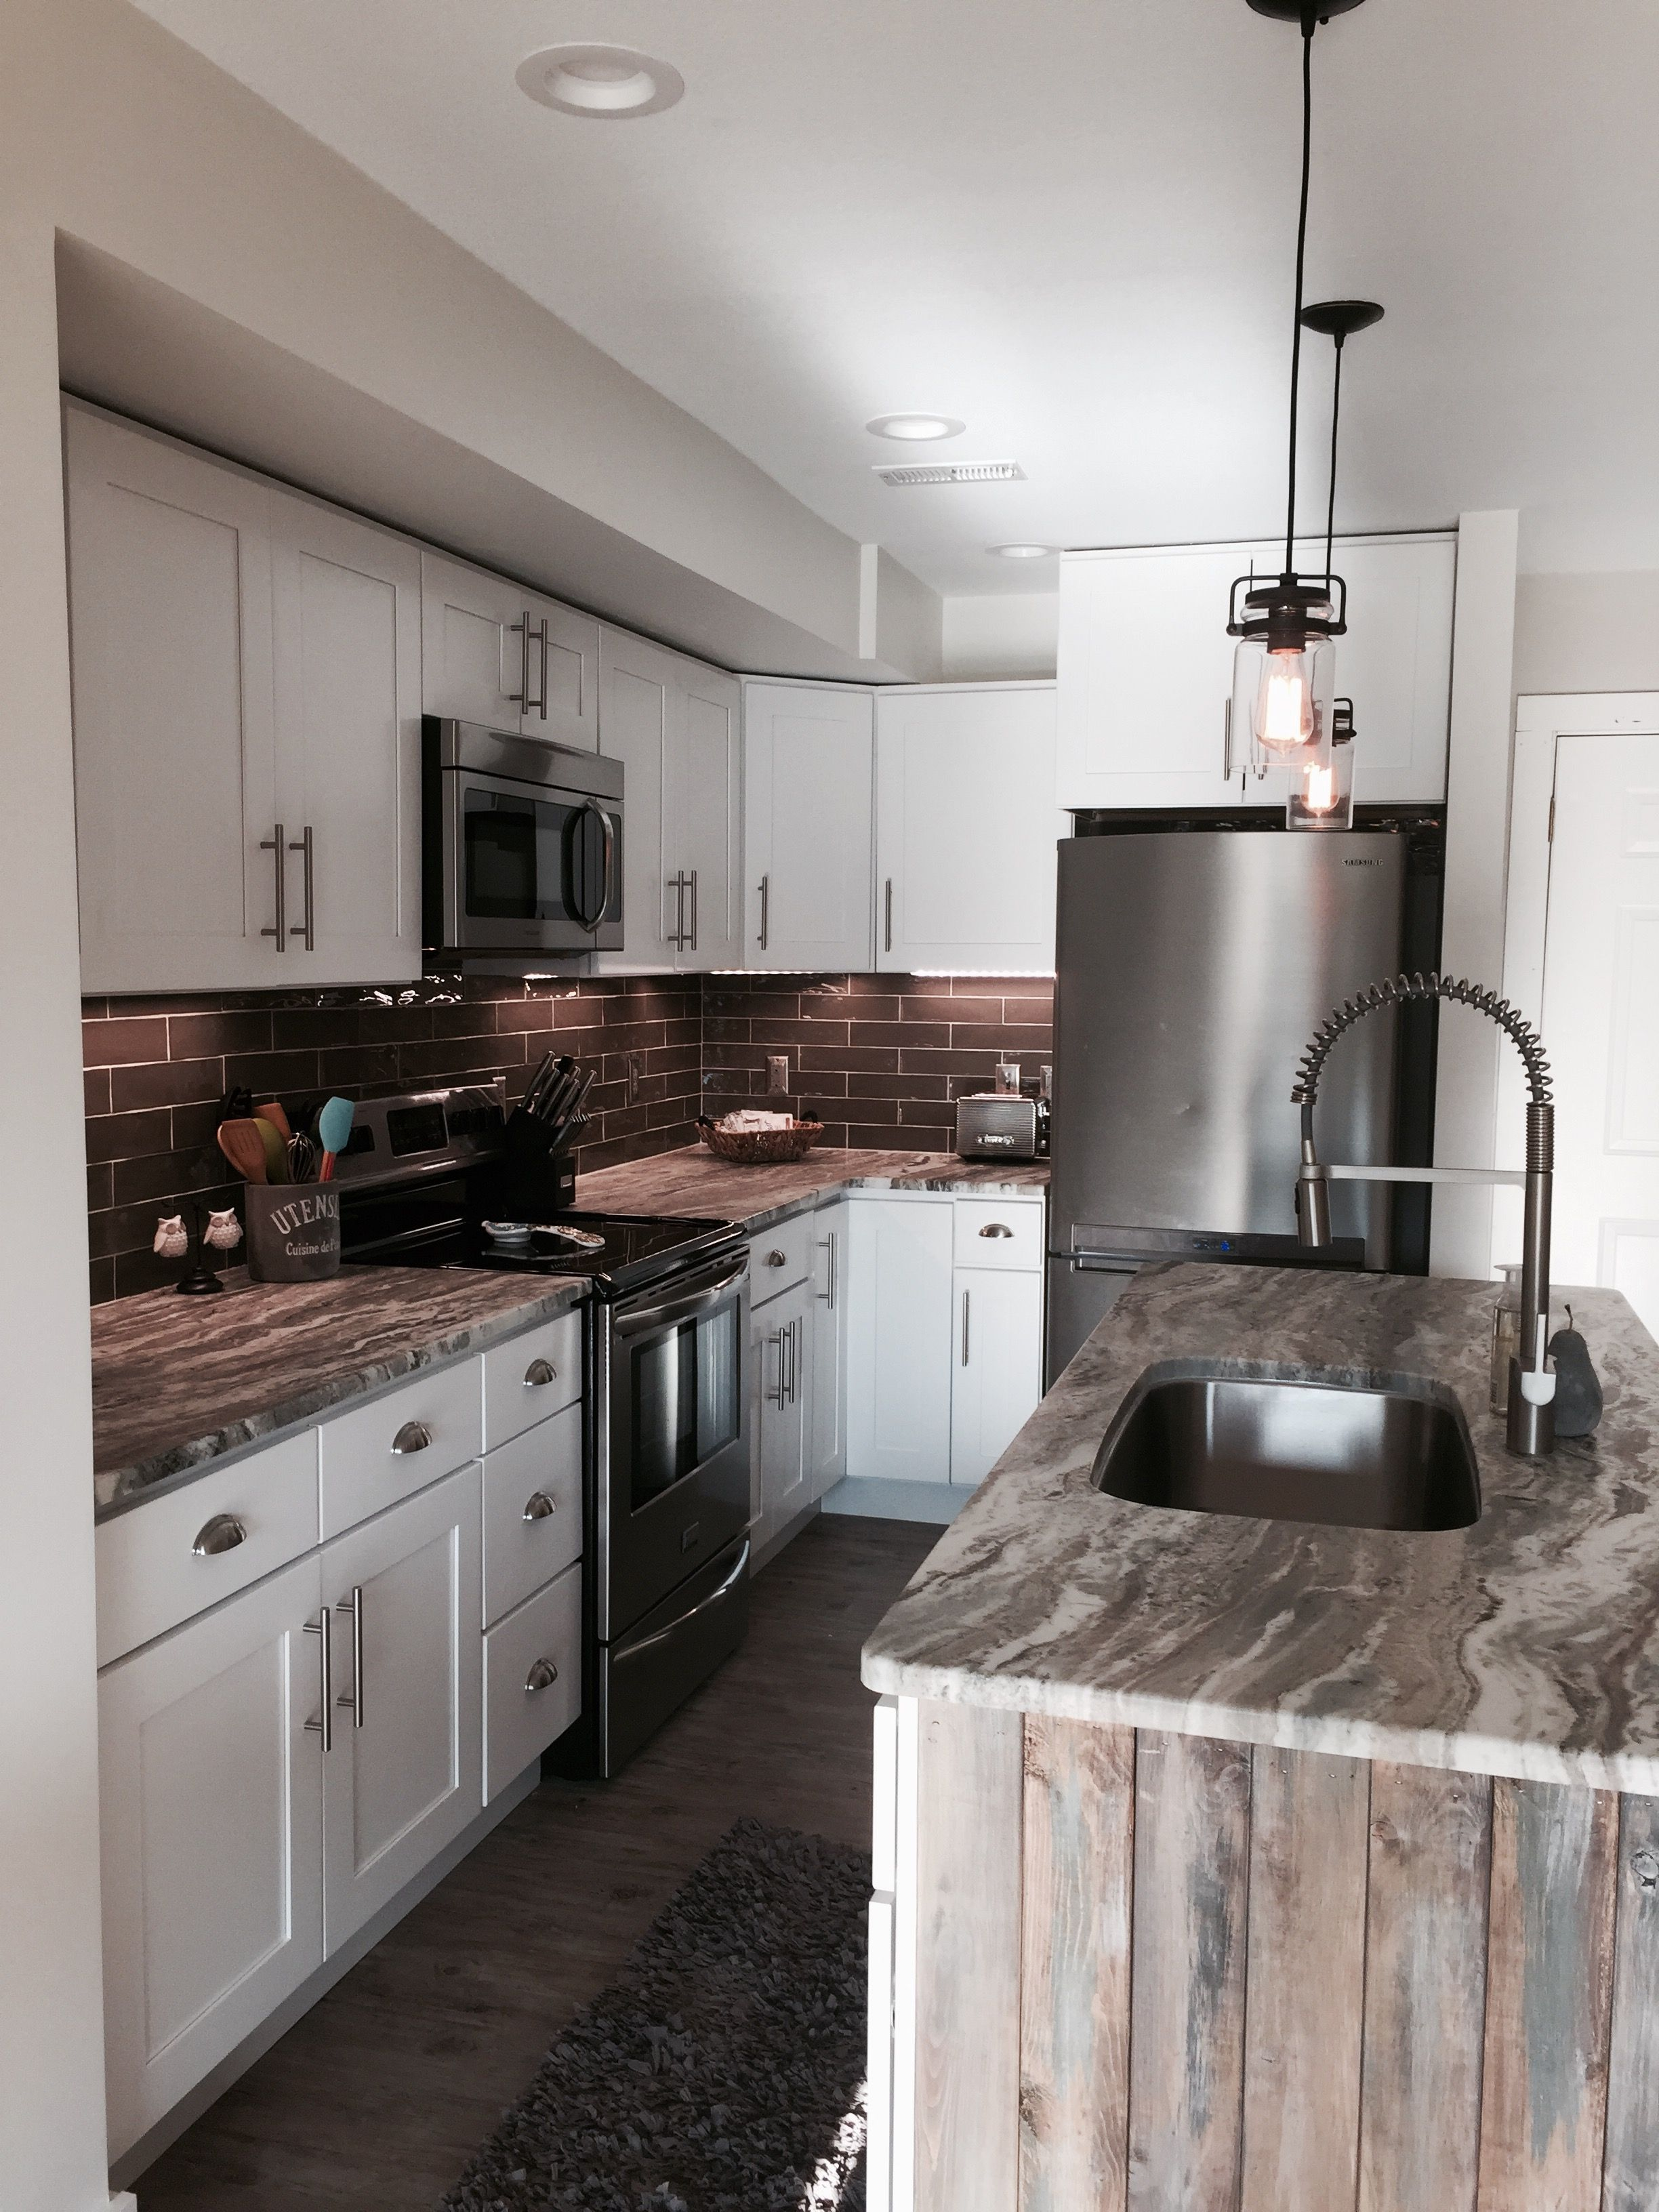 Brown fantasy leathered finish granite | Countertops ... on Kitchen Farmhouse Granite Countertops  id=71210